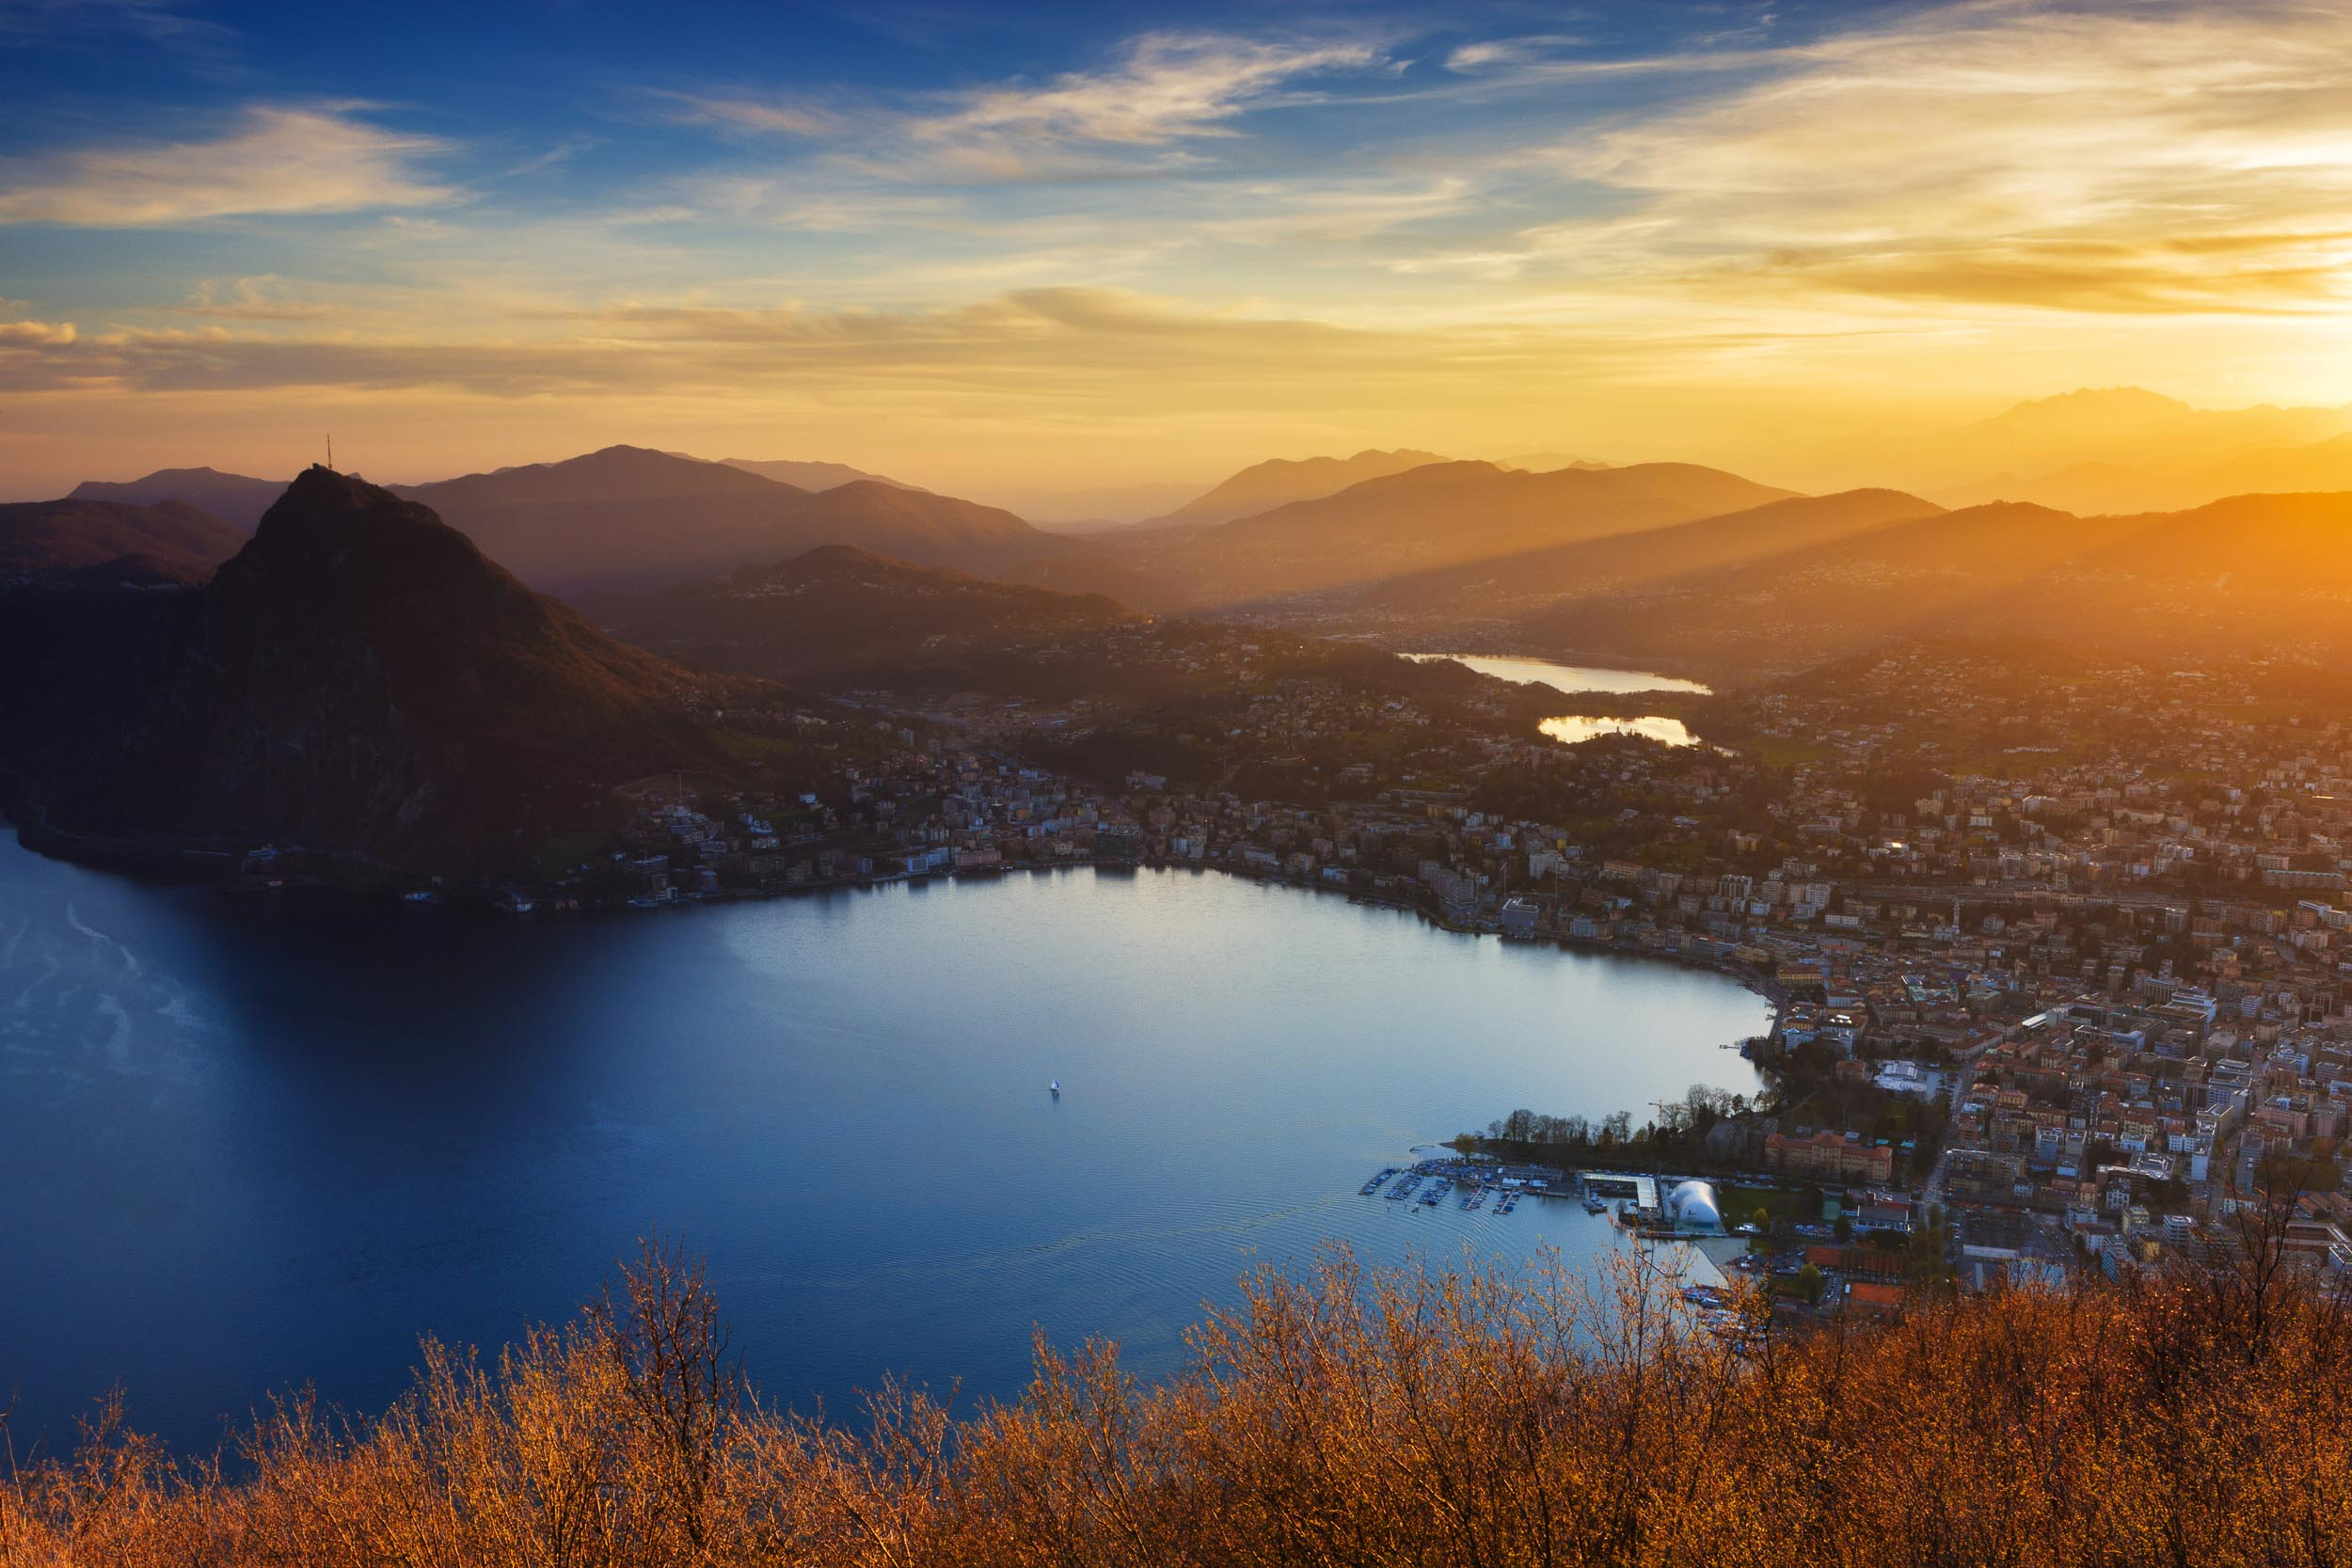 Evening view from Monte Bre (925 m) of Lugano and the San Salvatore (912 m). Copyright by: Switzerland Tourism